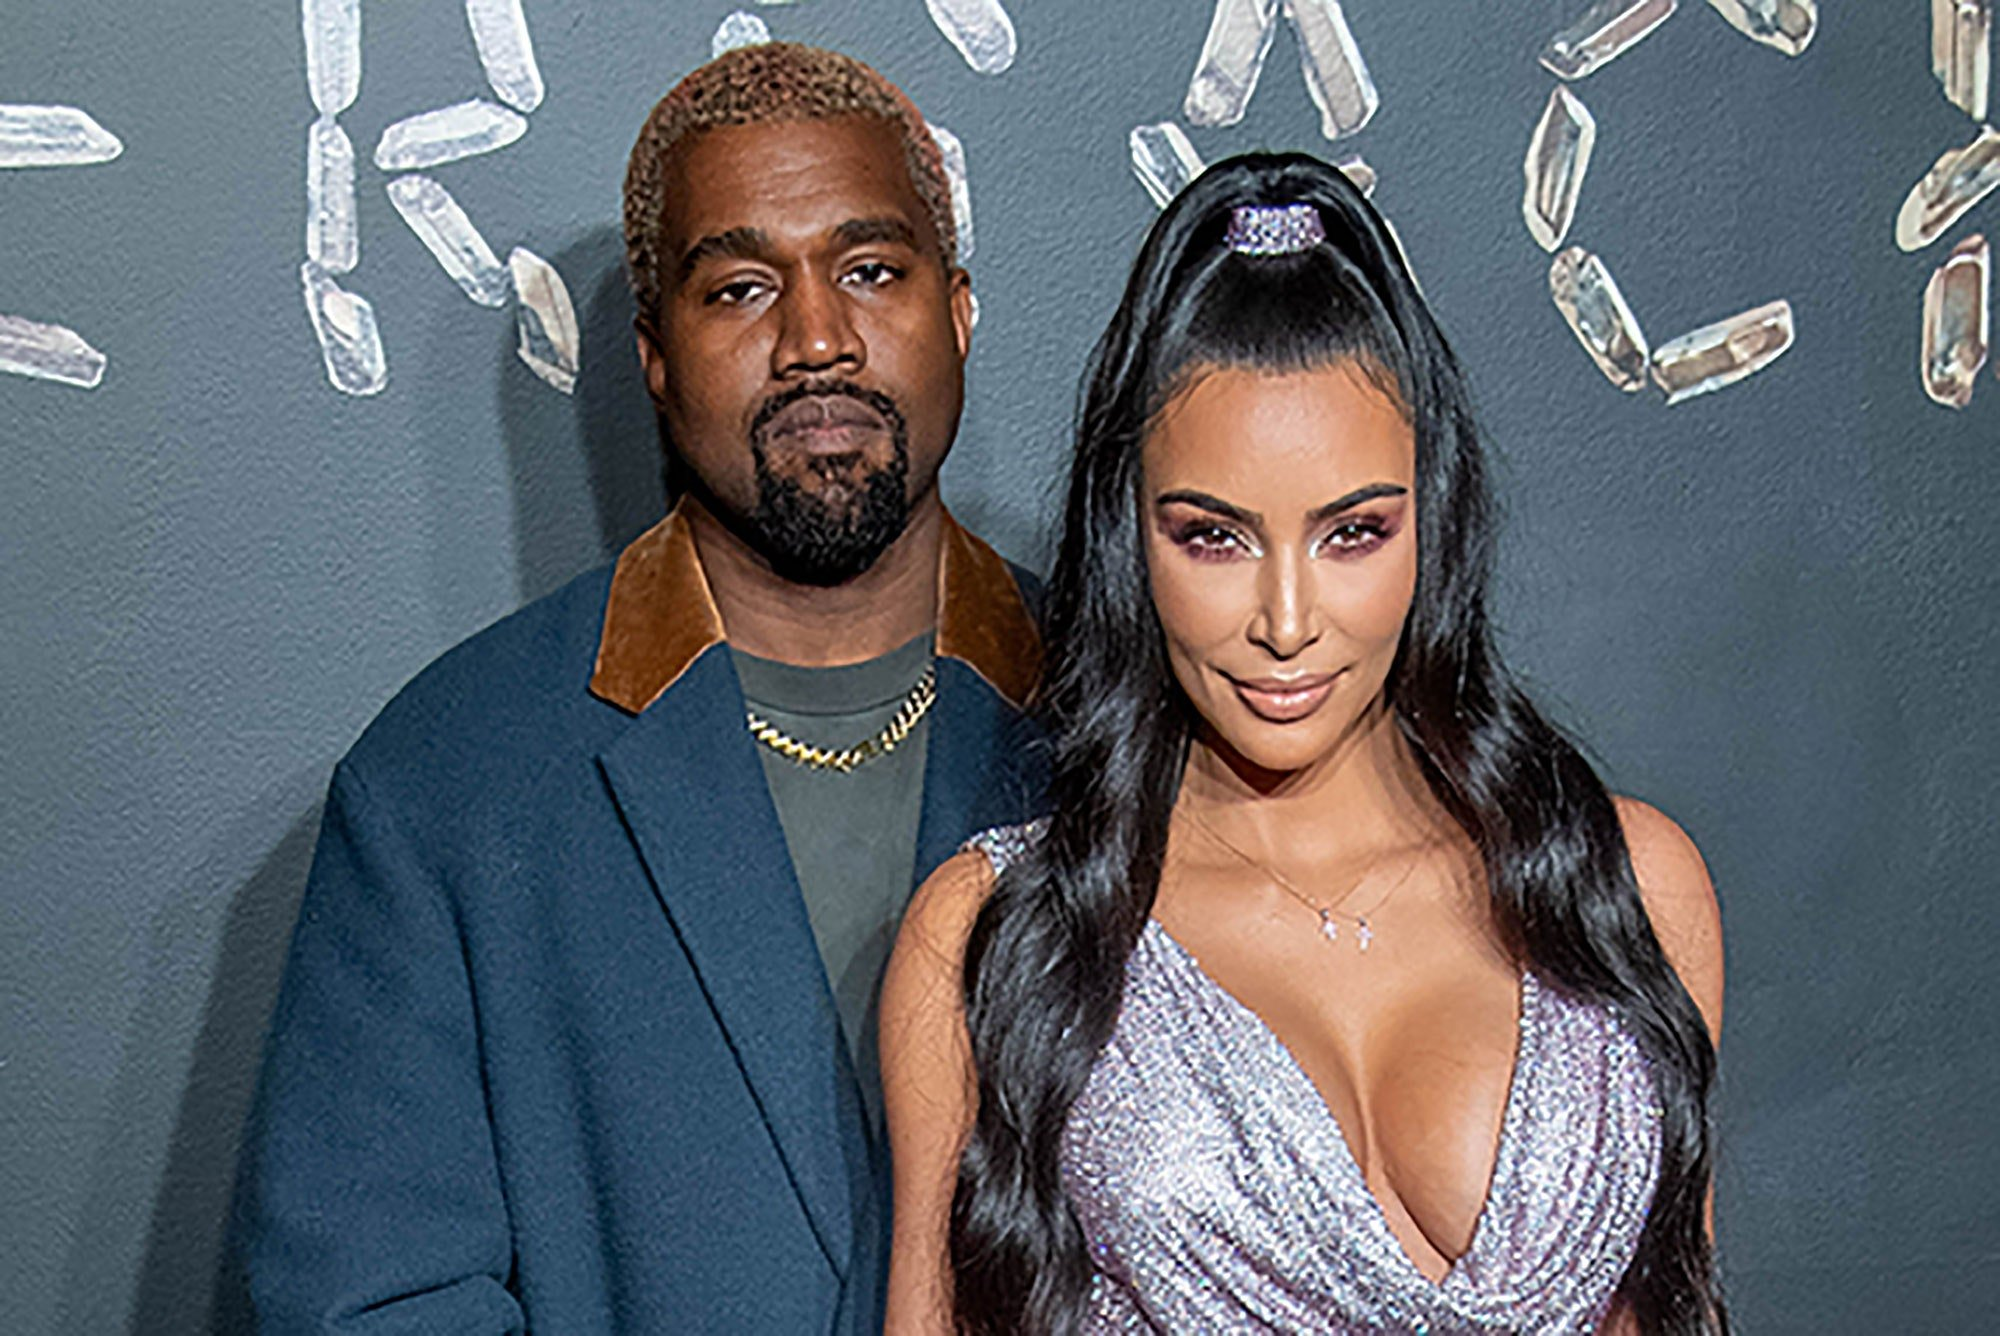 KUWTK: Kim Kardashian And Kanye West To Still Spend The Holidays Together Amid 'Separate Lives' Reports – Here's Why!